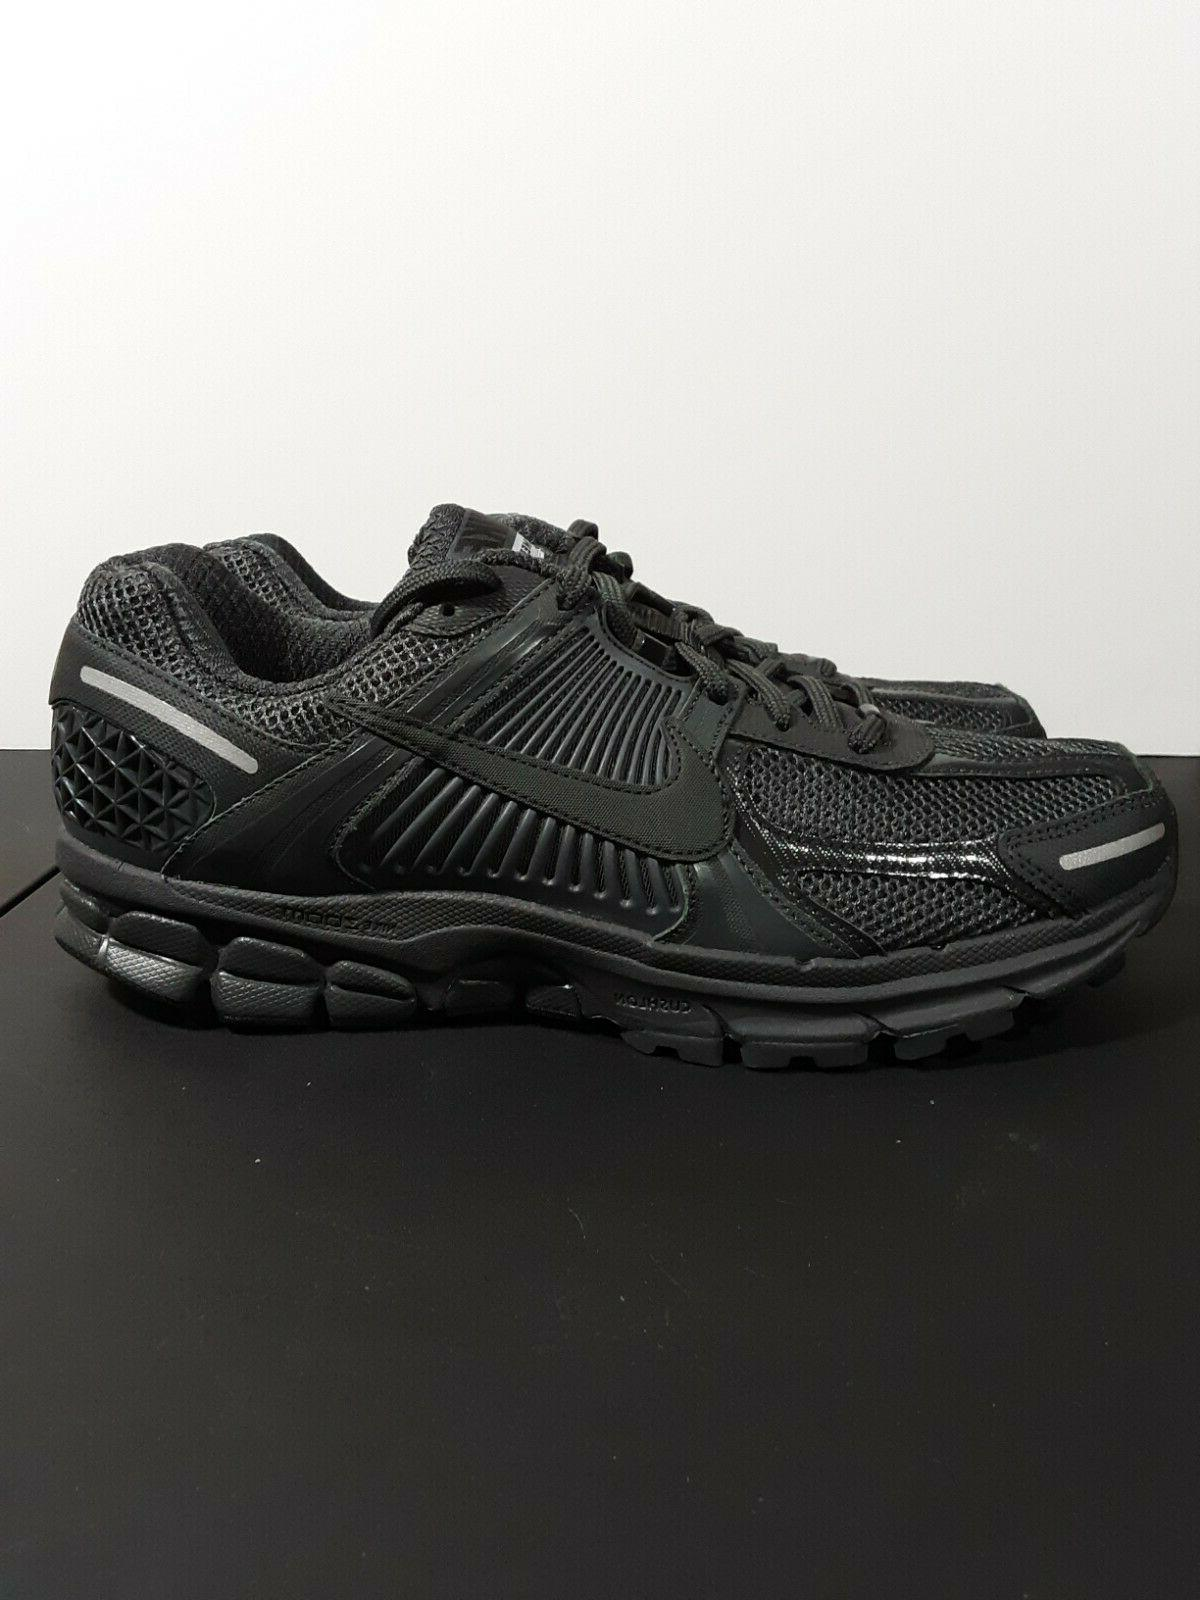 Nike SP 10 Anthracite Gray BV1358-002